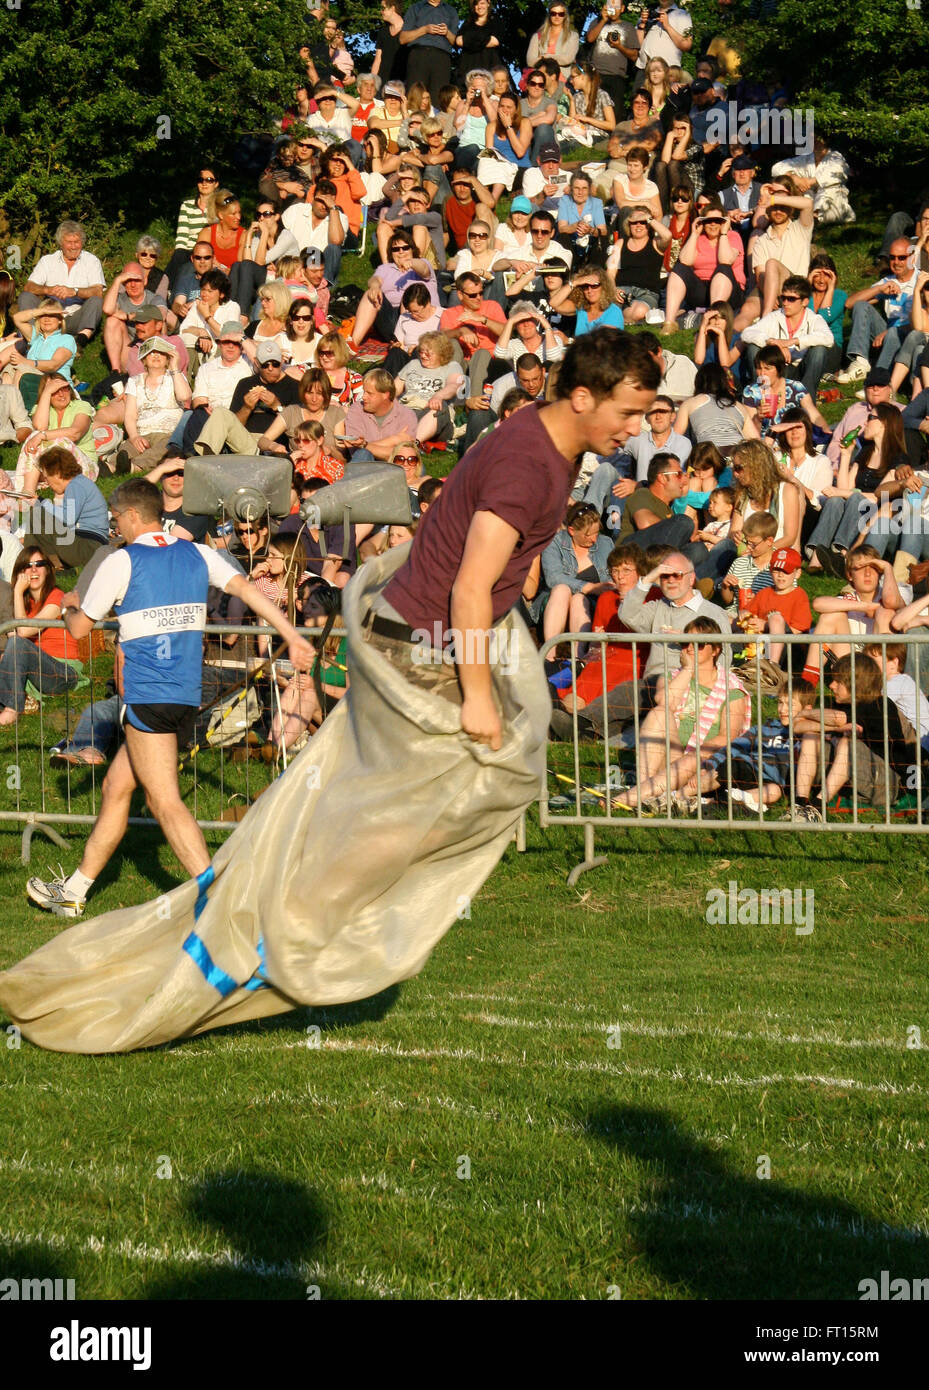 Competitor taking part in sack race Stock Photo